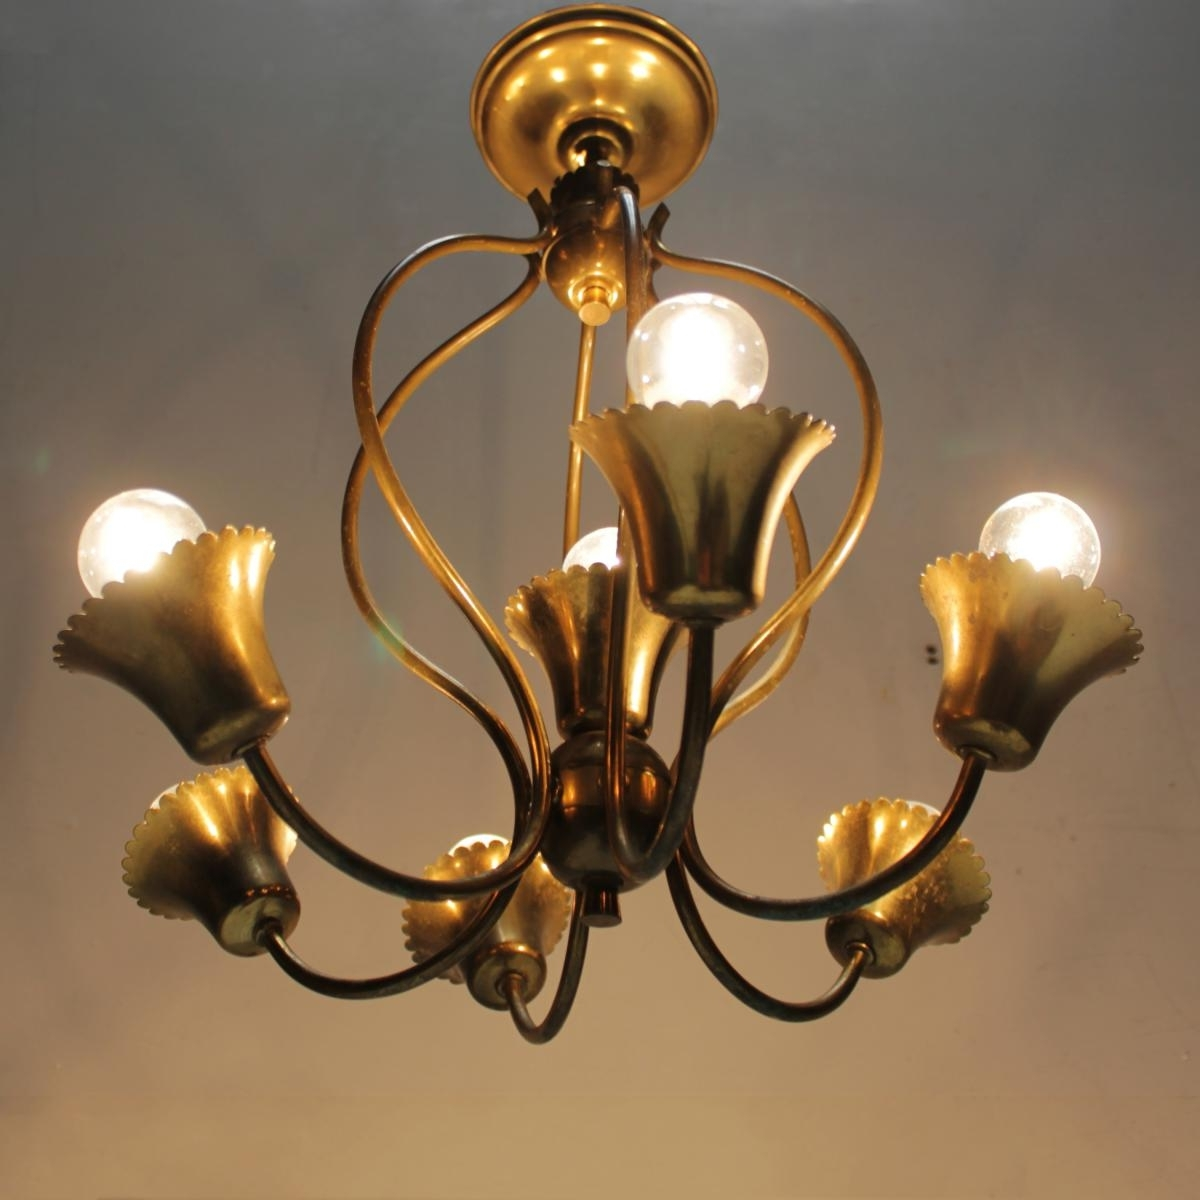 Vintage Italian Chandelier For Sale At Pamono Intended For Most Up To Date Vintage Italian Chandeliers (View 14 of 20)